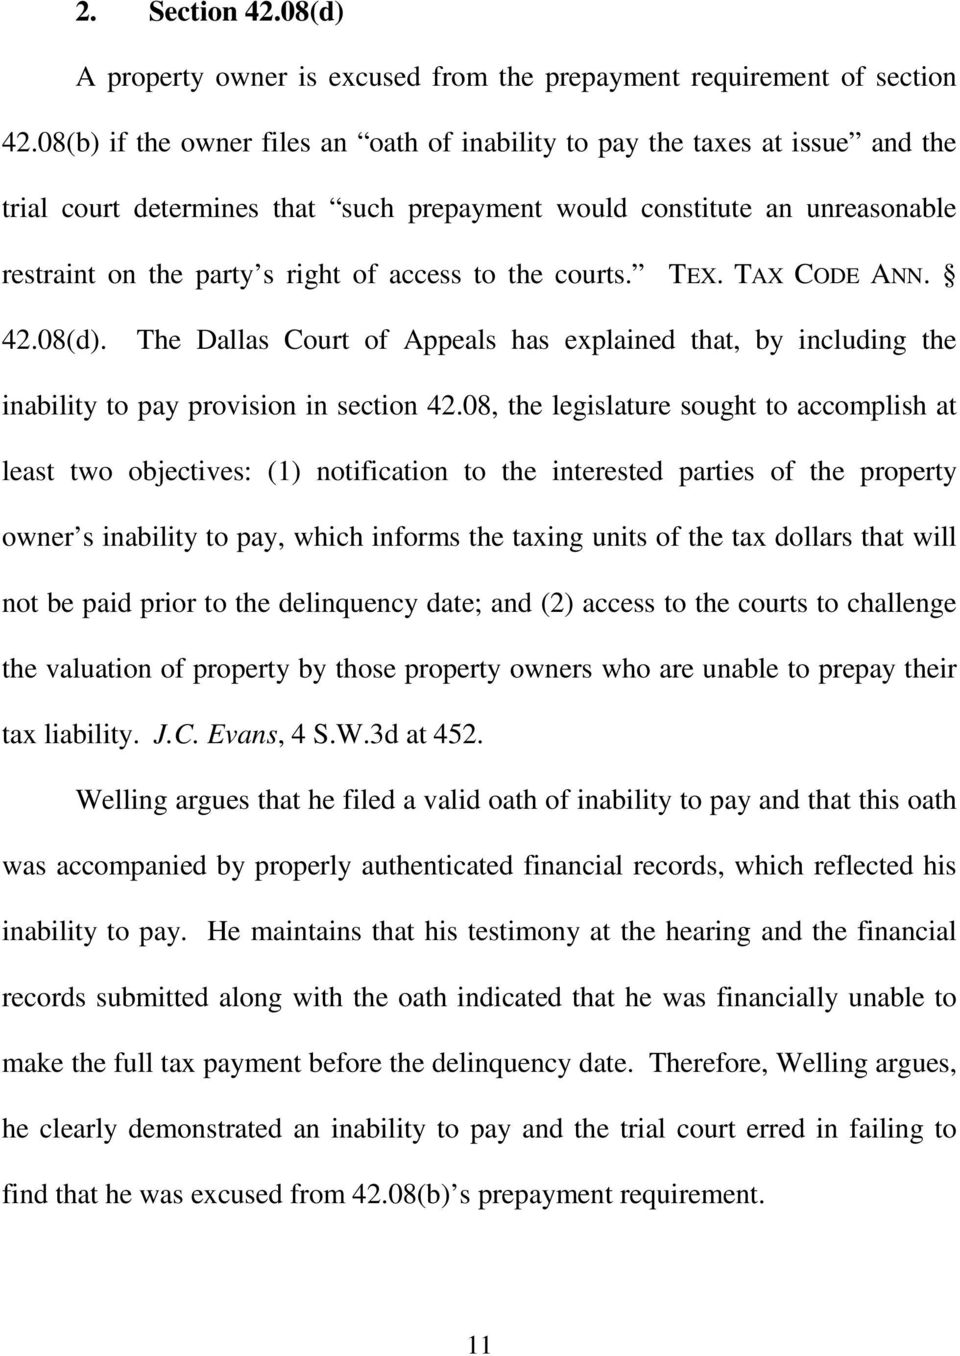 to the courts. TEX. TAX CODE ANN. 42.08(d). The Dallas Court of Appeals has explained that, by including the inability to pay provision in section 42.